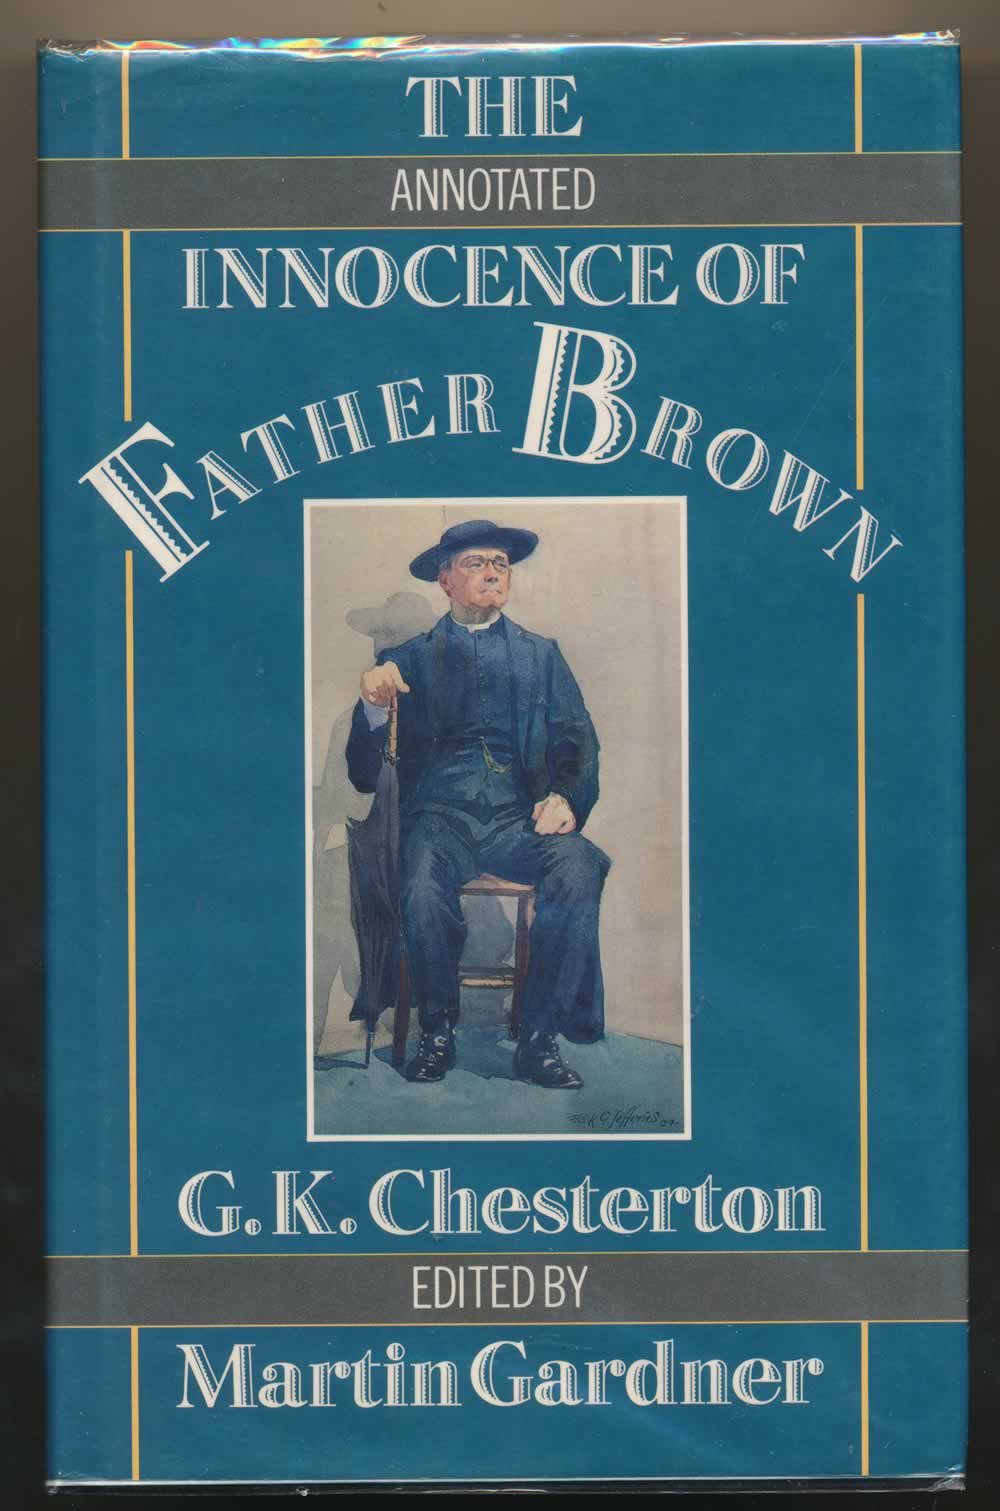 The annotated innocence of Father Brown